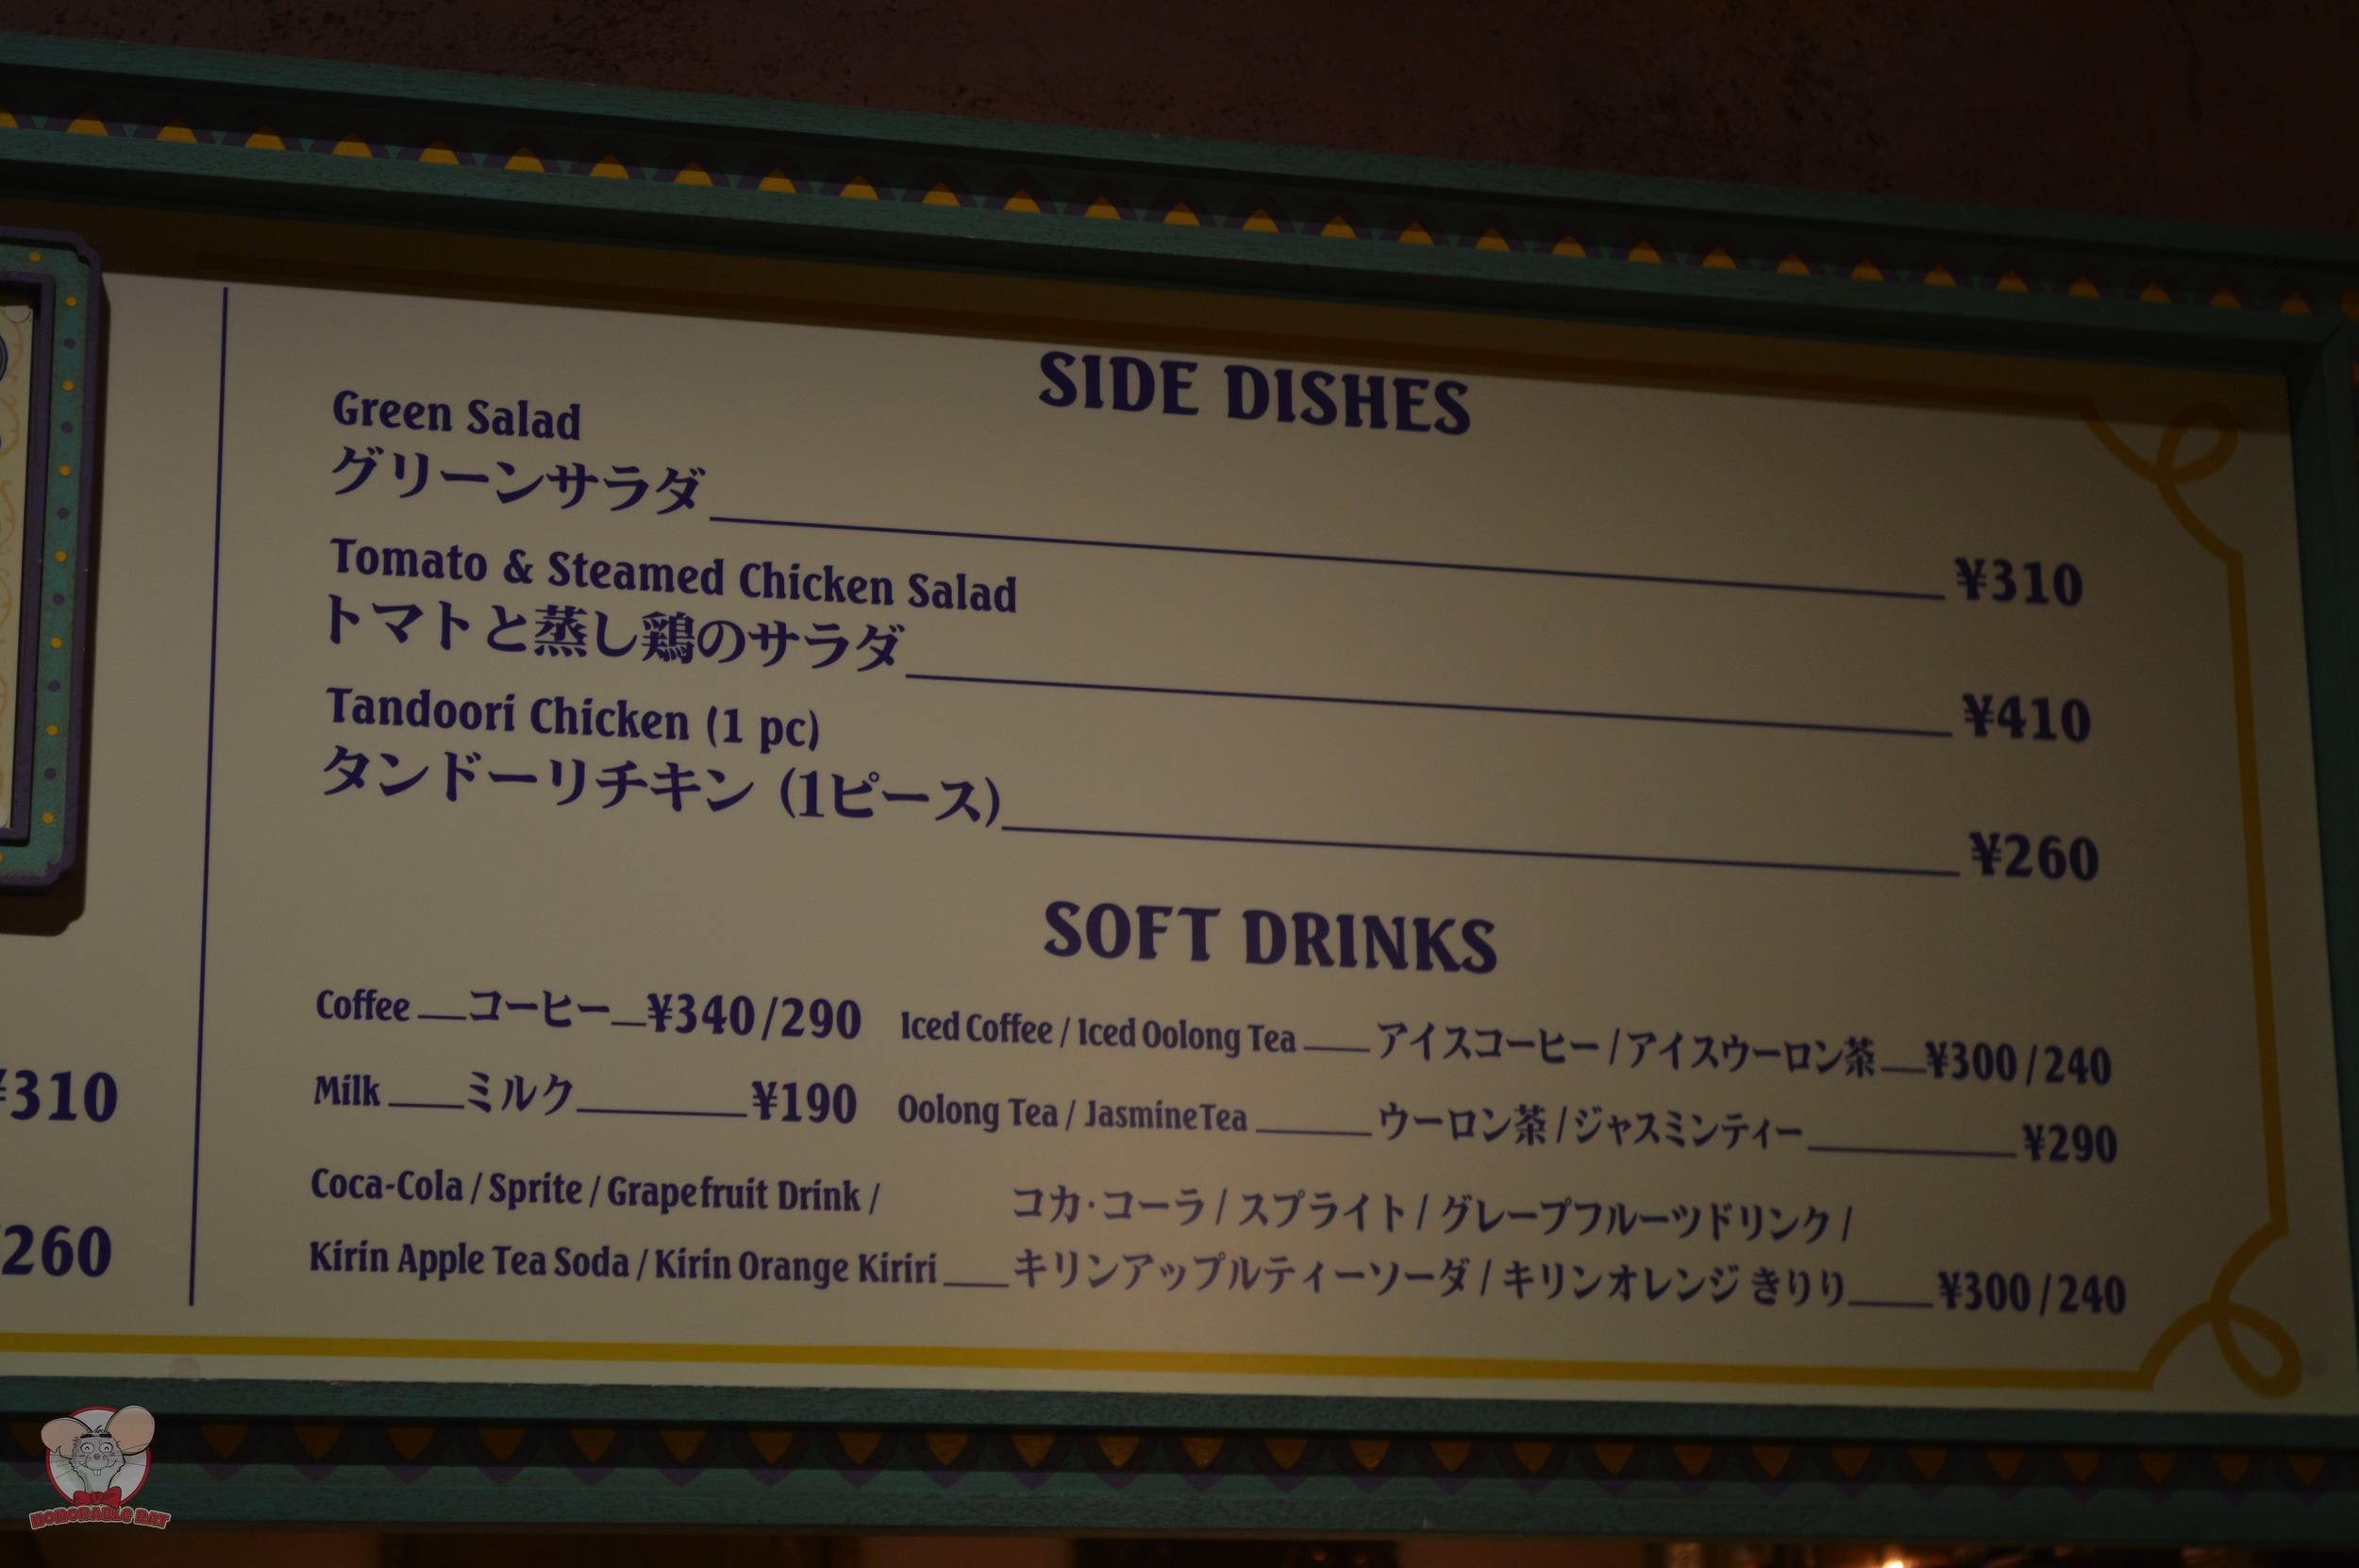 Side Dishes and Soft Drinks